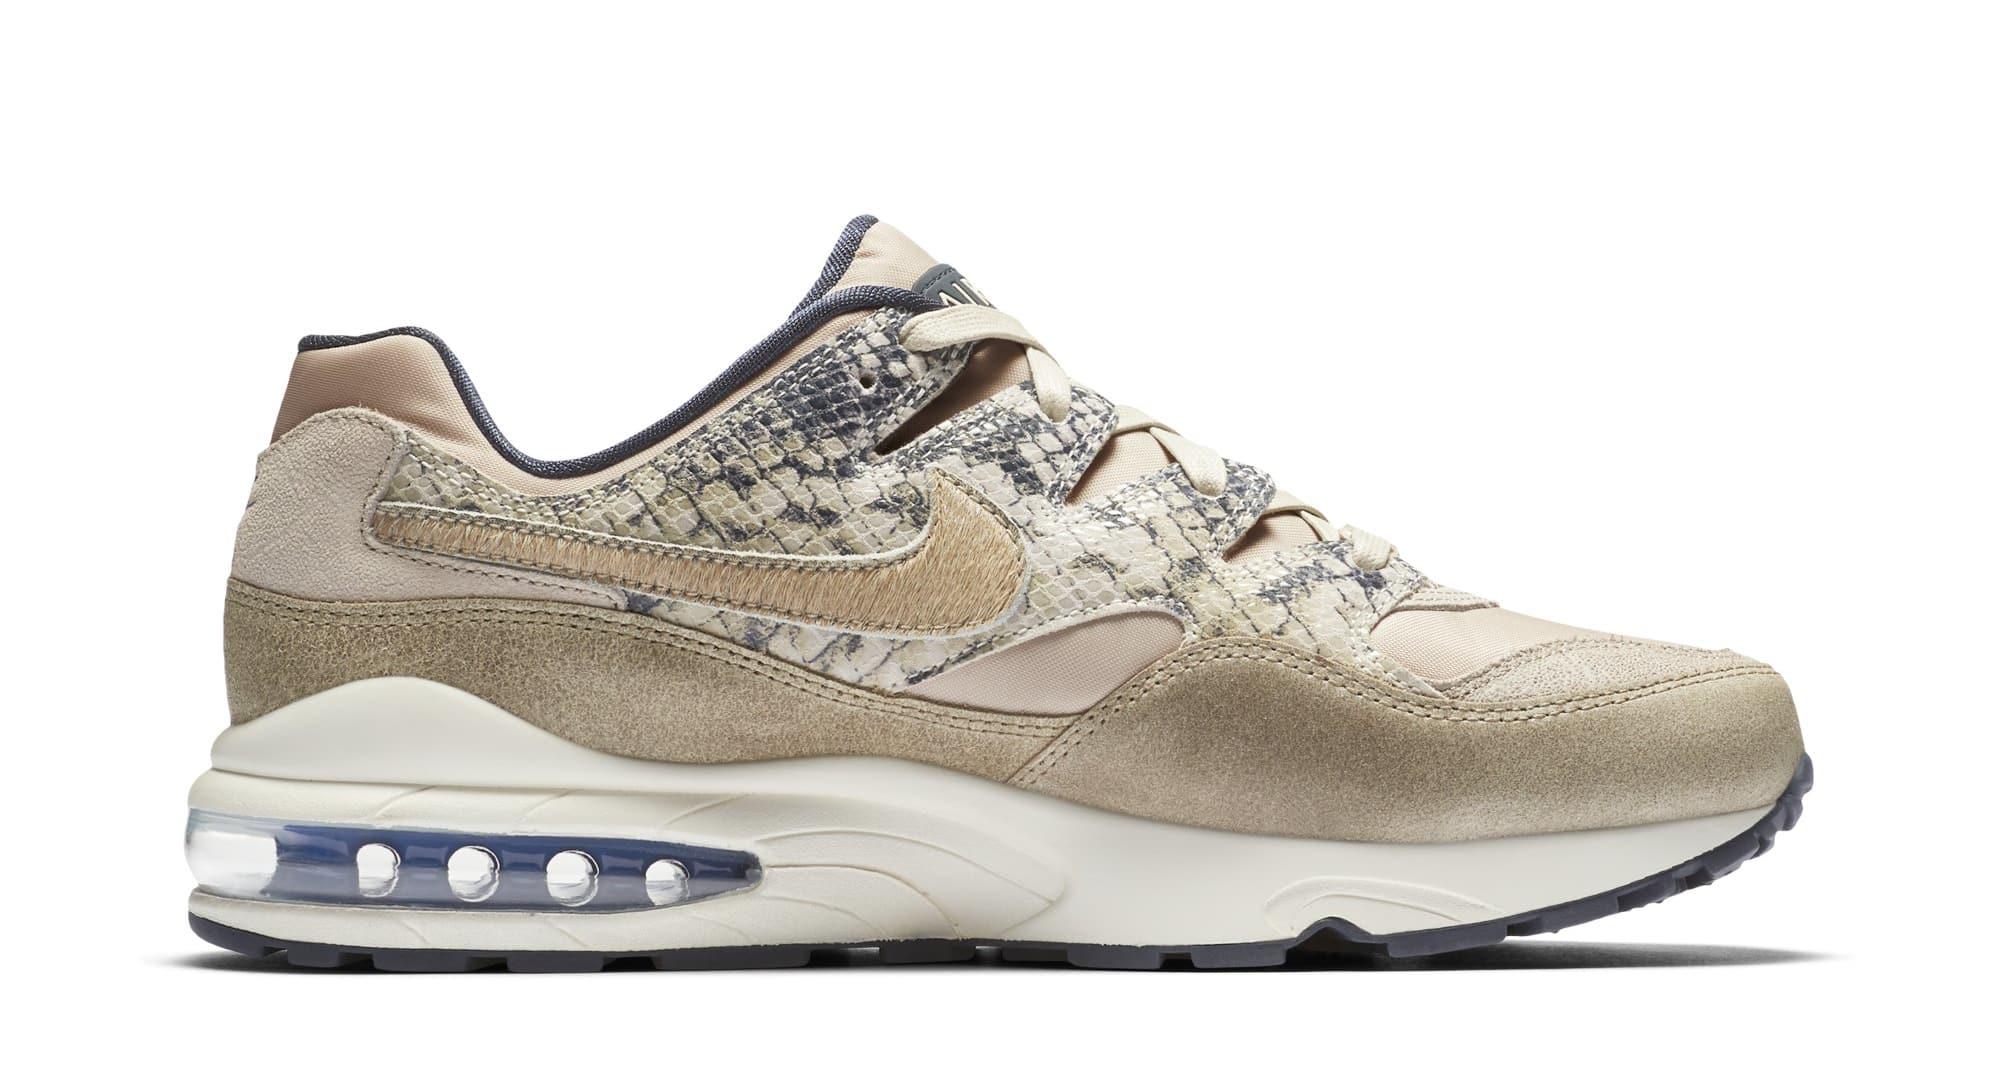 881c84aea88 czech the post the nike air max 94 returns in a sleek snakeskin colorway  appeared first